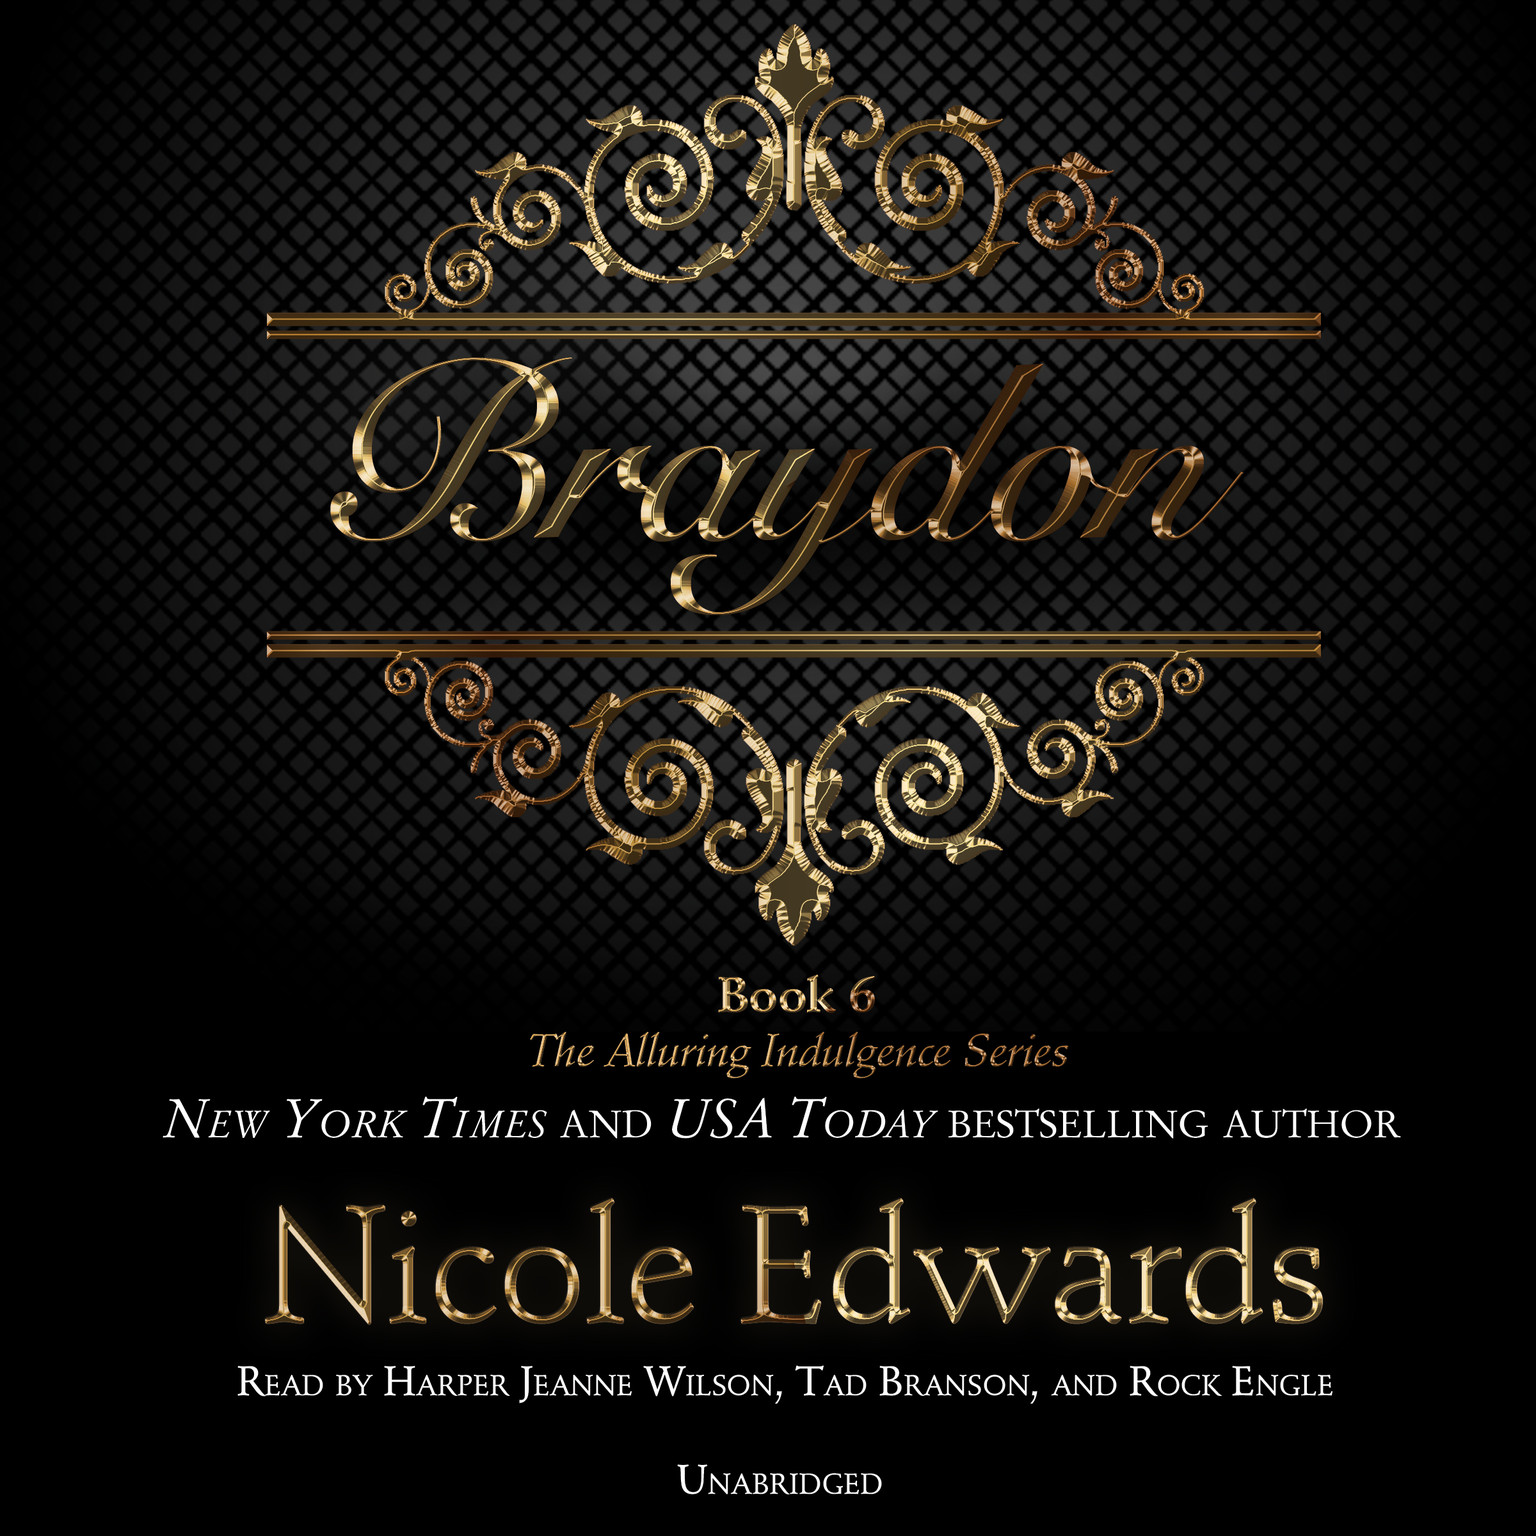 Printable Braydon: The Alluring Indulgence Series, Book 6 Audiobook Cover Art